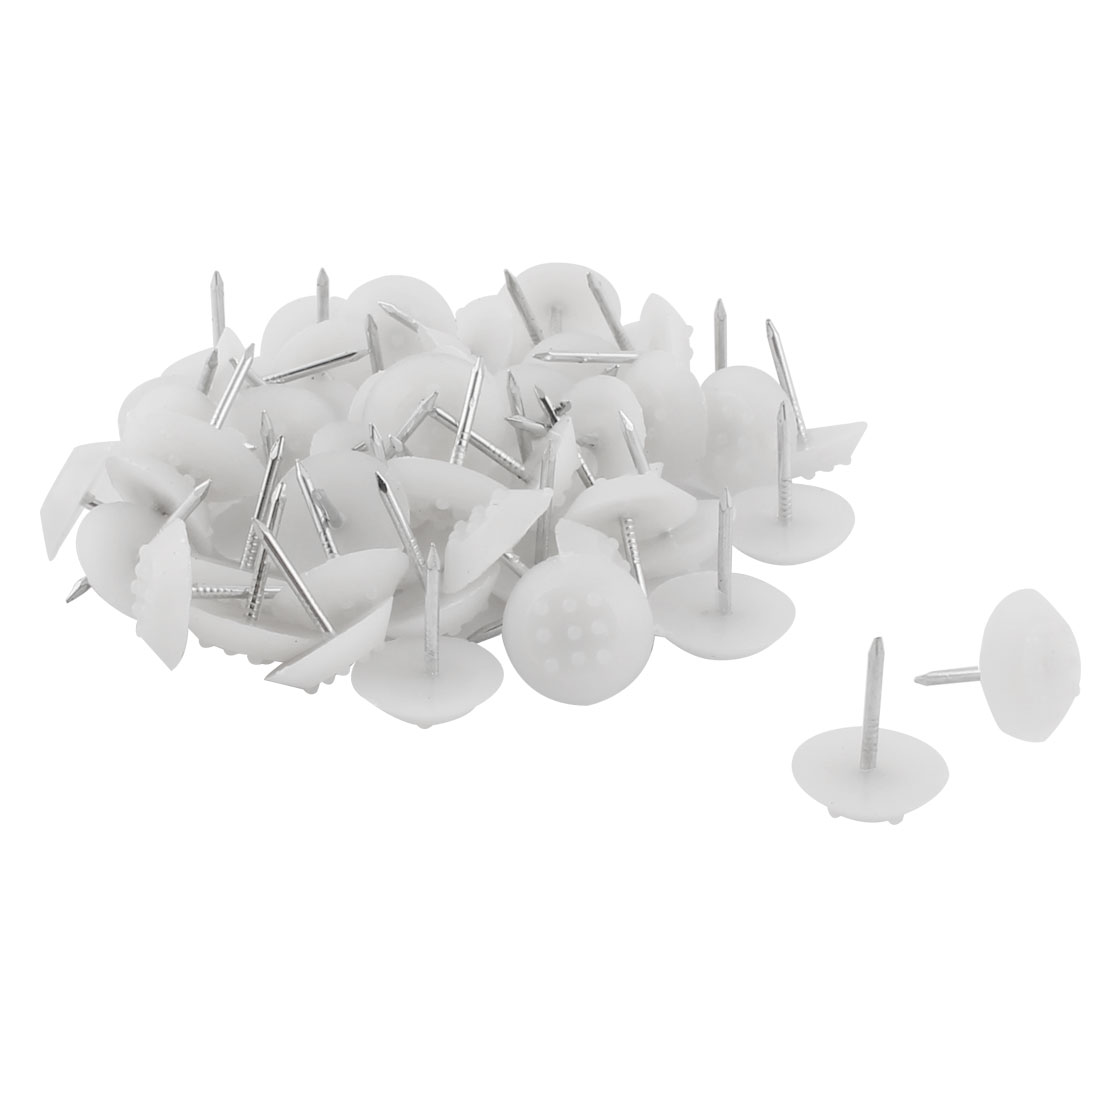 Furniture Chair Plastic Leg Feet Protector Non-slip Nails White 1.4cm Dia 50pcs